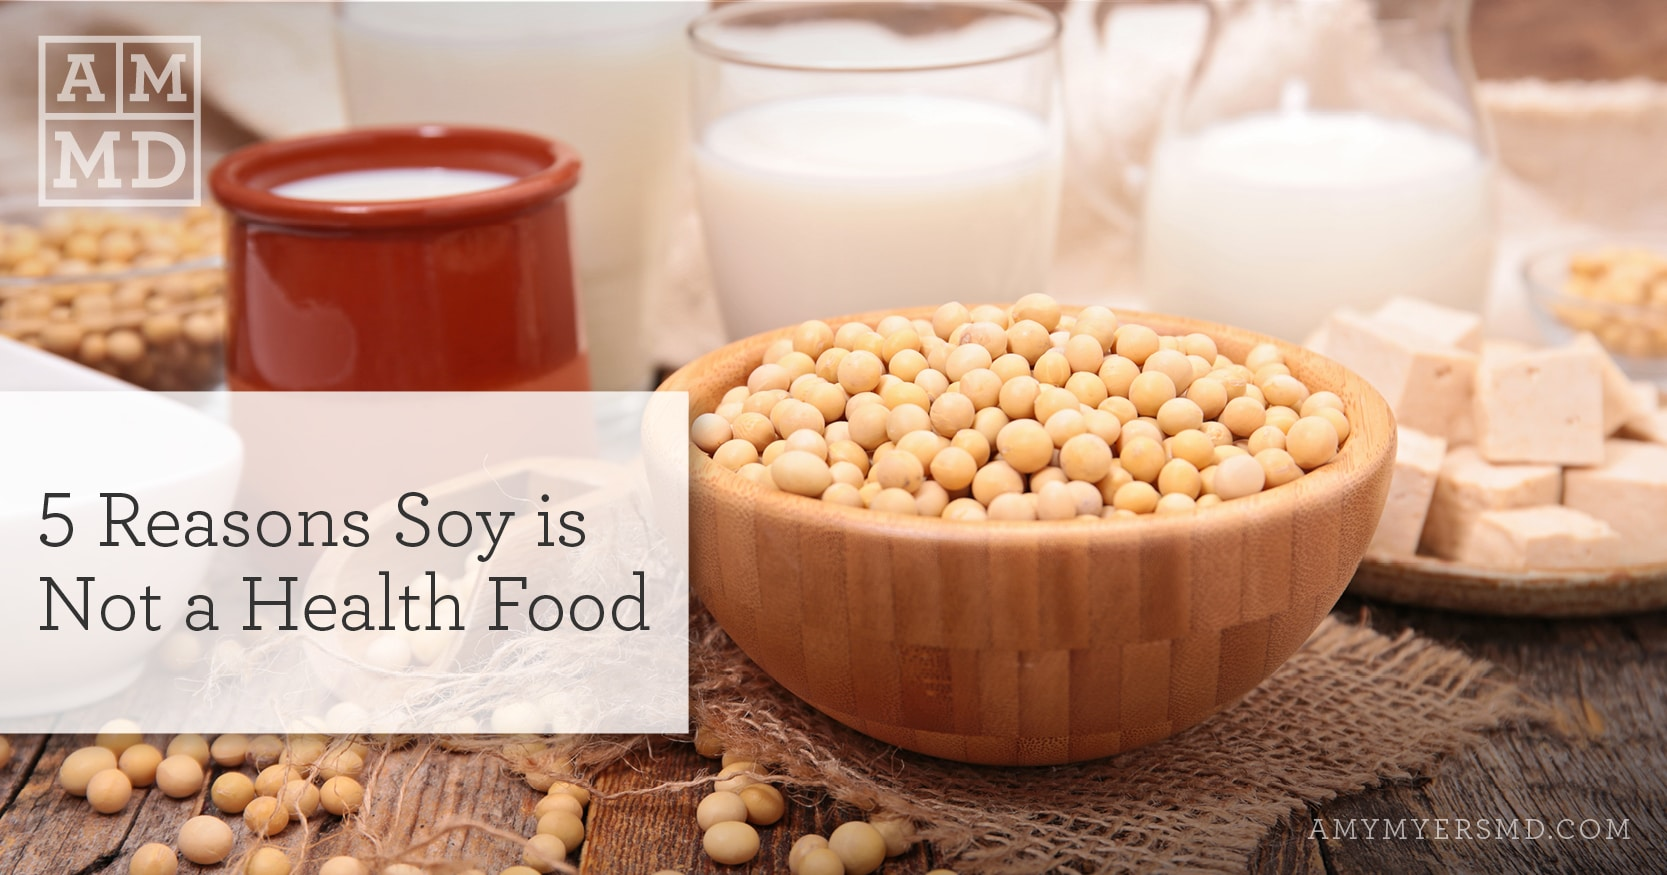 5 Reasons Soy is Not a Health Food - Amy Myers MD